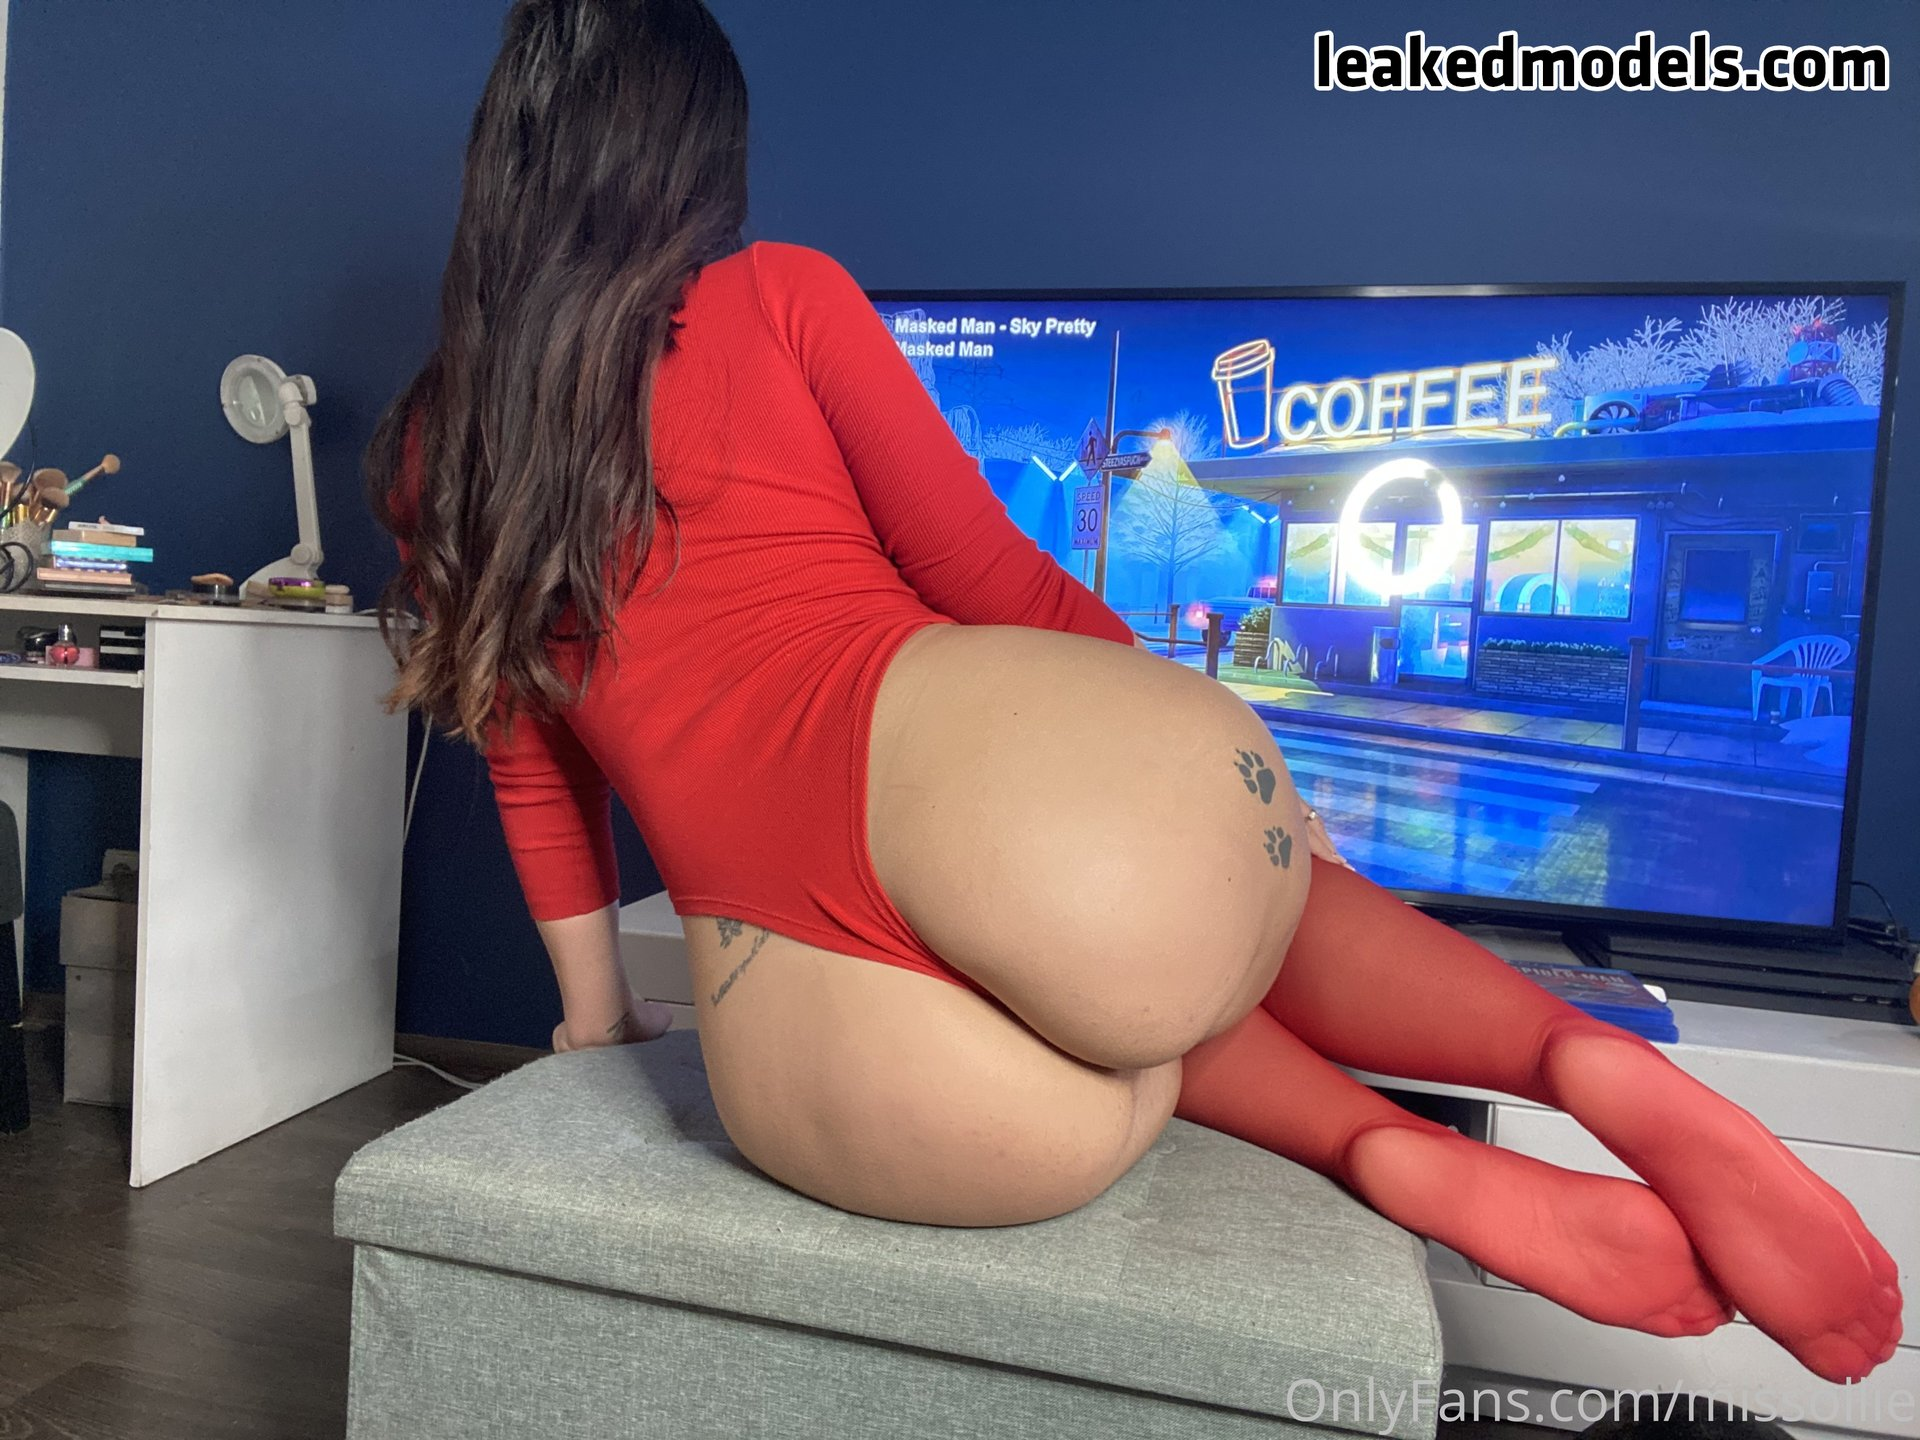 missolie – fanny.applepie OnlyFans Leaks (72 Photos and 6 Videos)